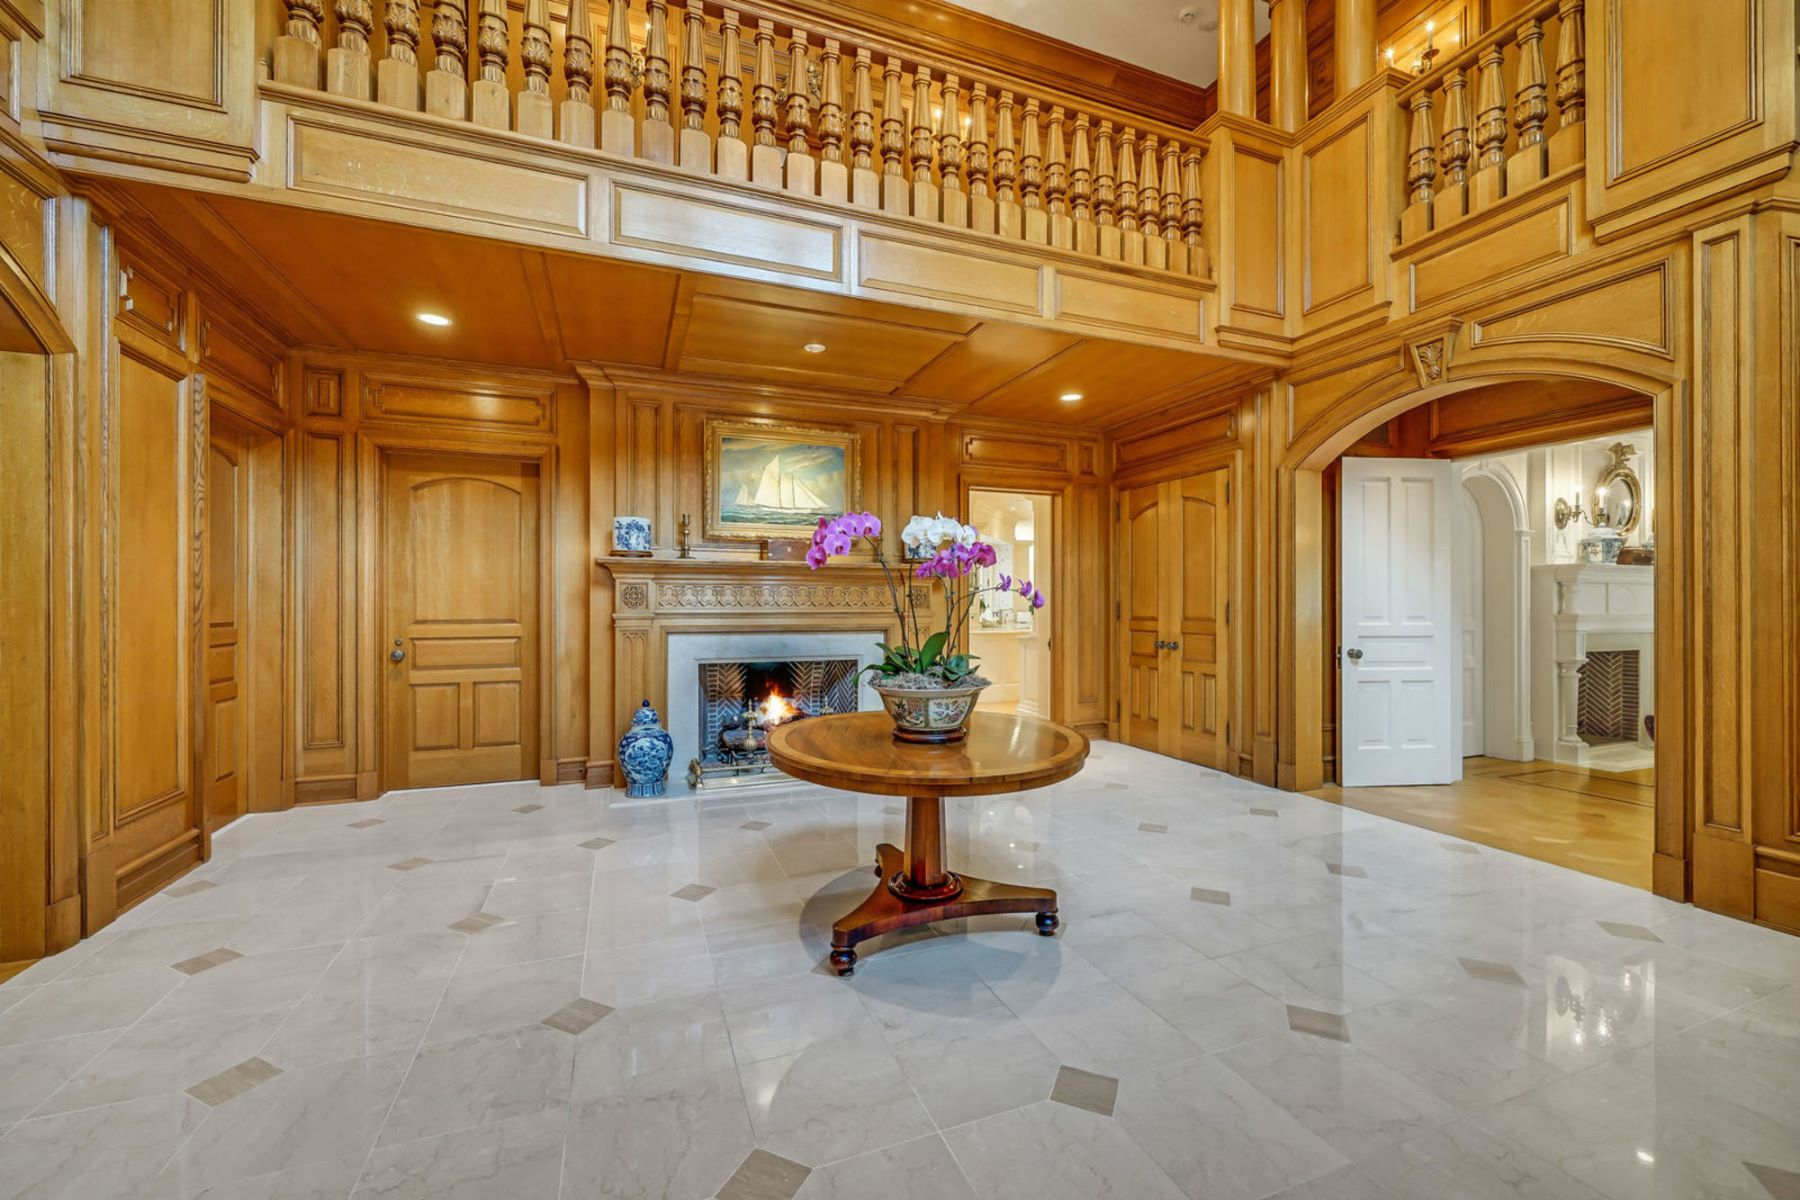 Additional photo for property listing at Spring Lake Masterpiece 212 Brighton Ave, 斯普林莱克, 新泽西州 07762 美国